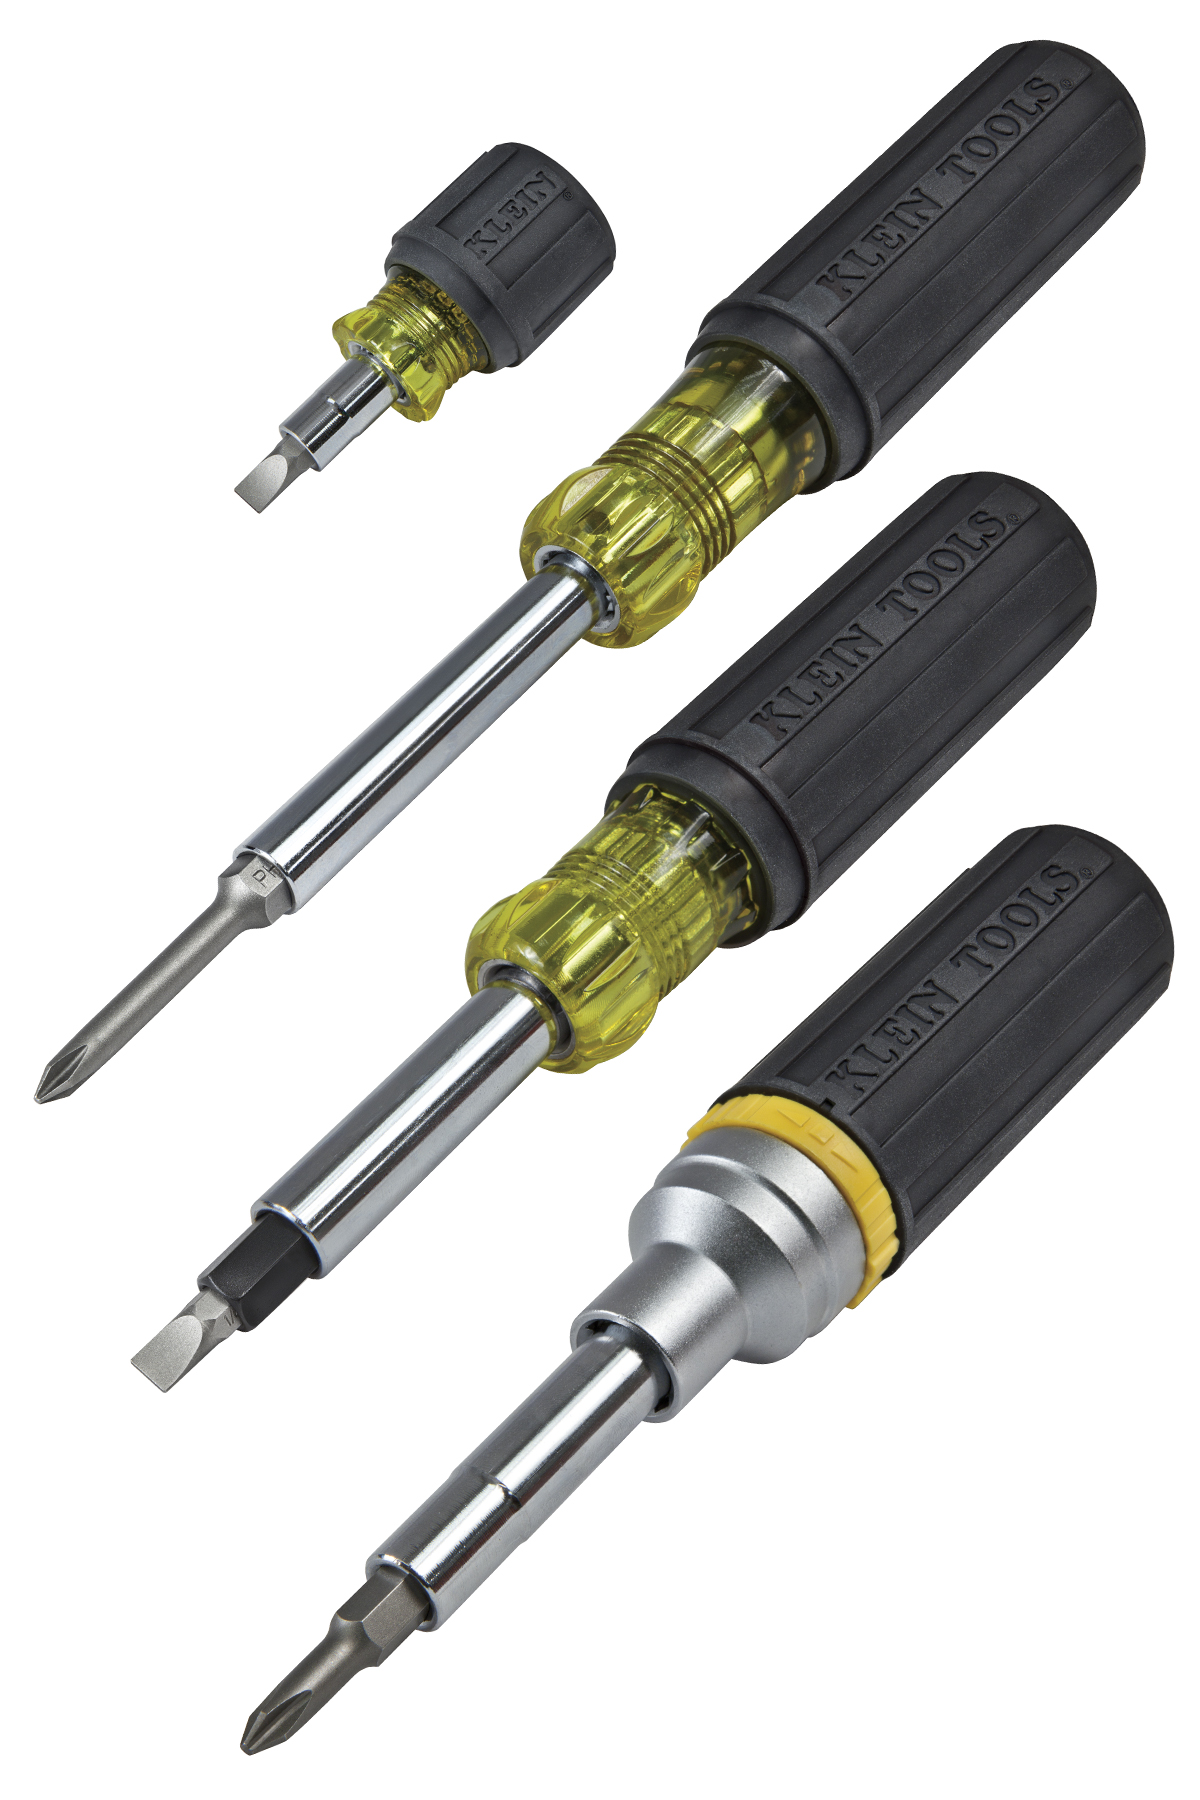 Interchangeable Multi-Bit Screwdrivers/Nut Drivers